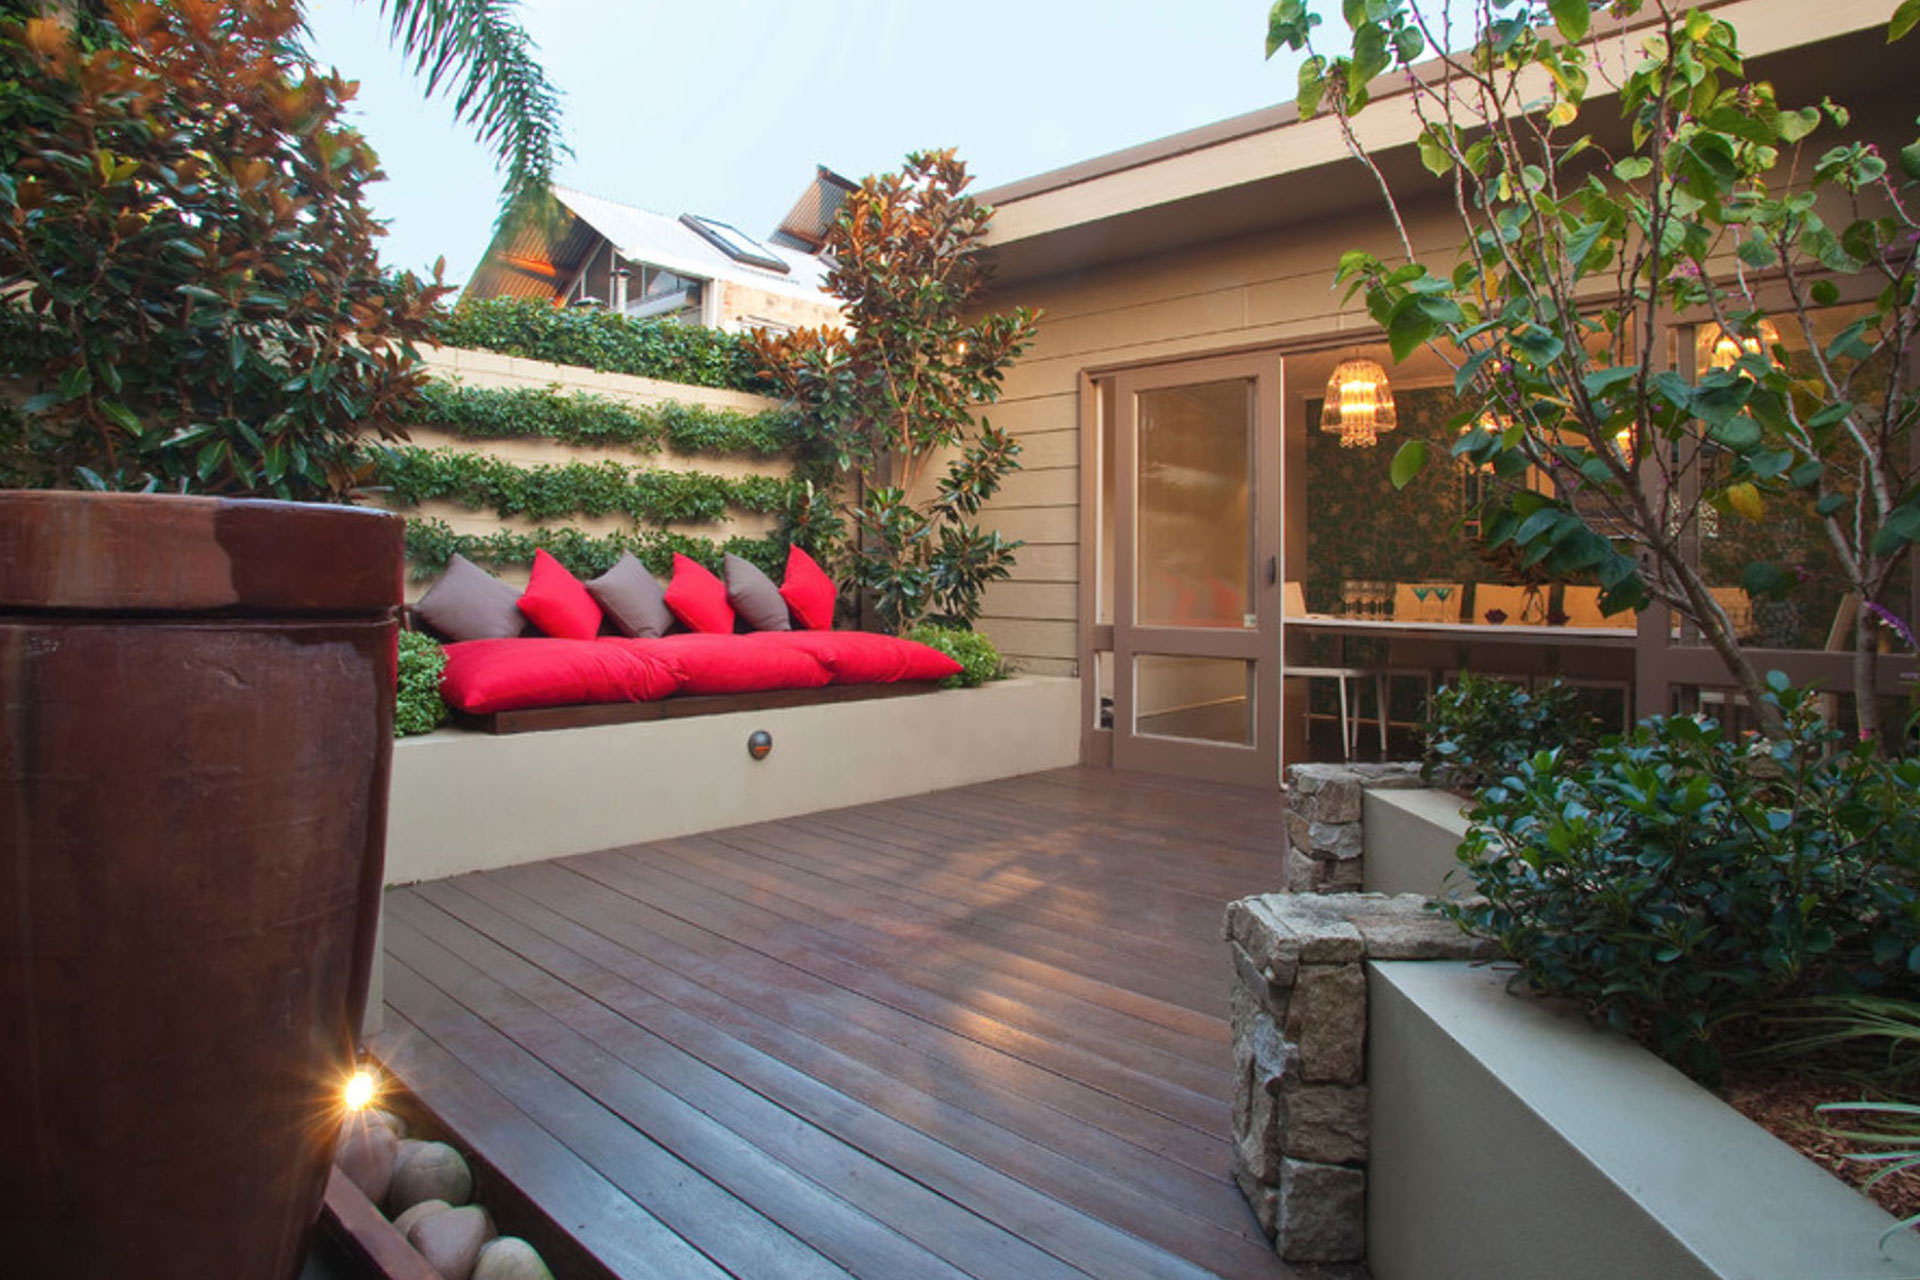 5 ideas for making a big impact in a small outdoor space Outdoor patio ideas for small spaces